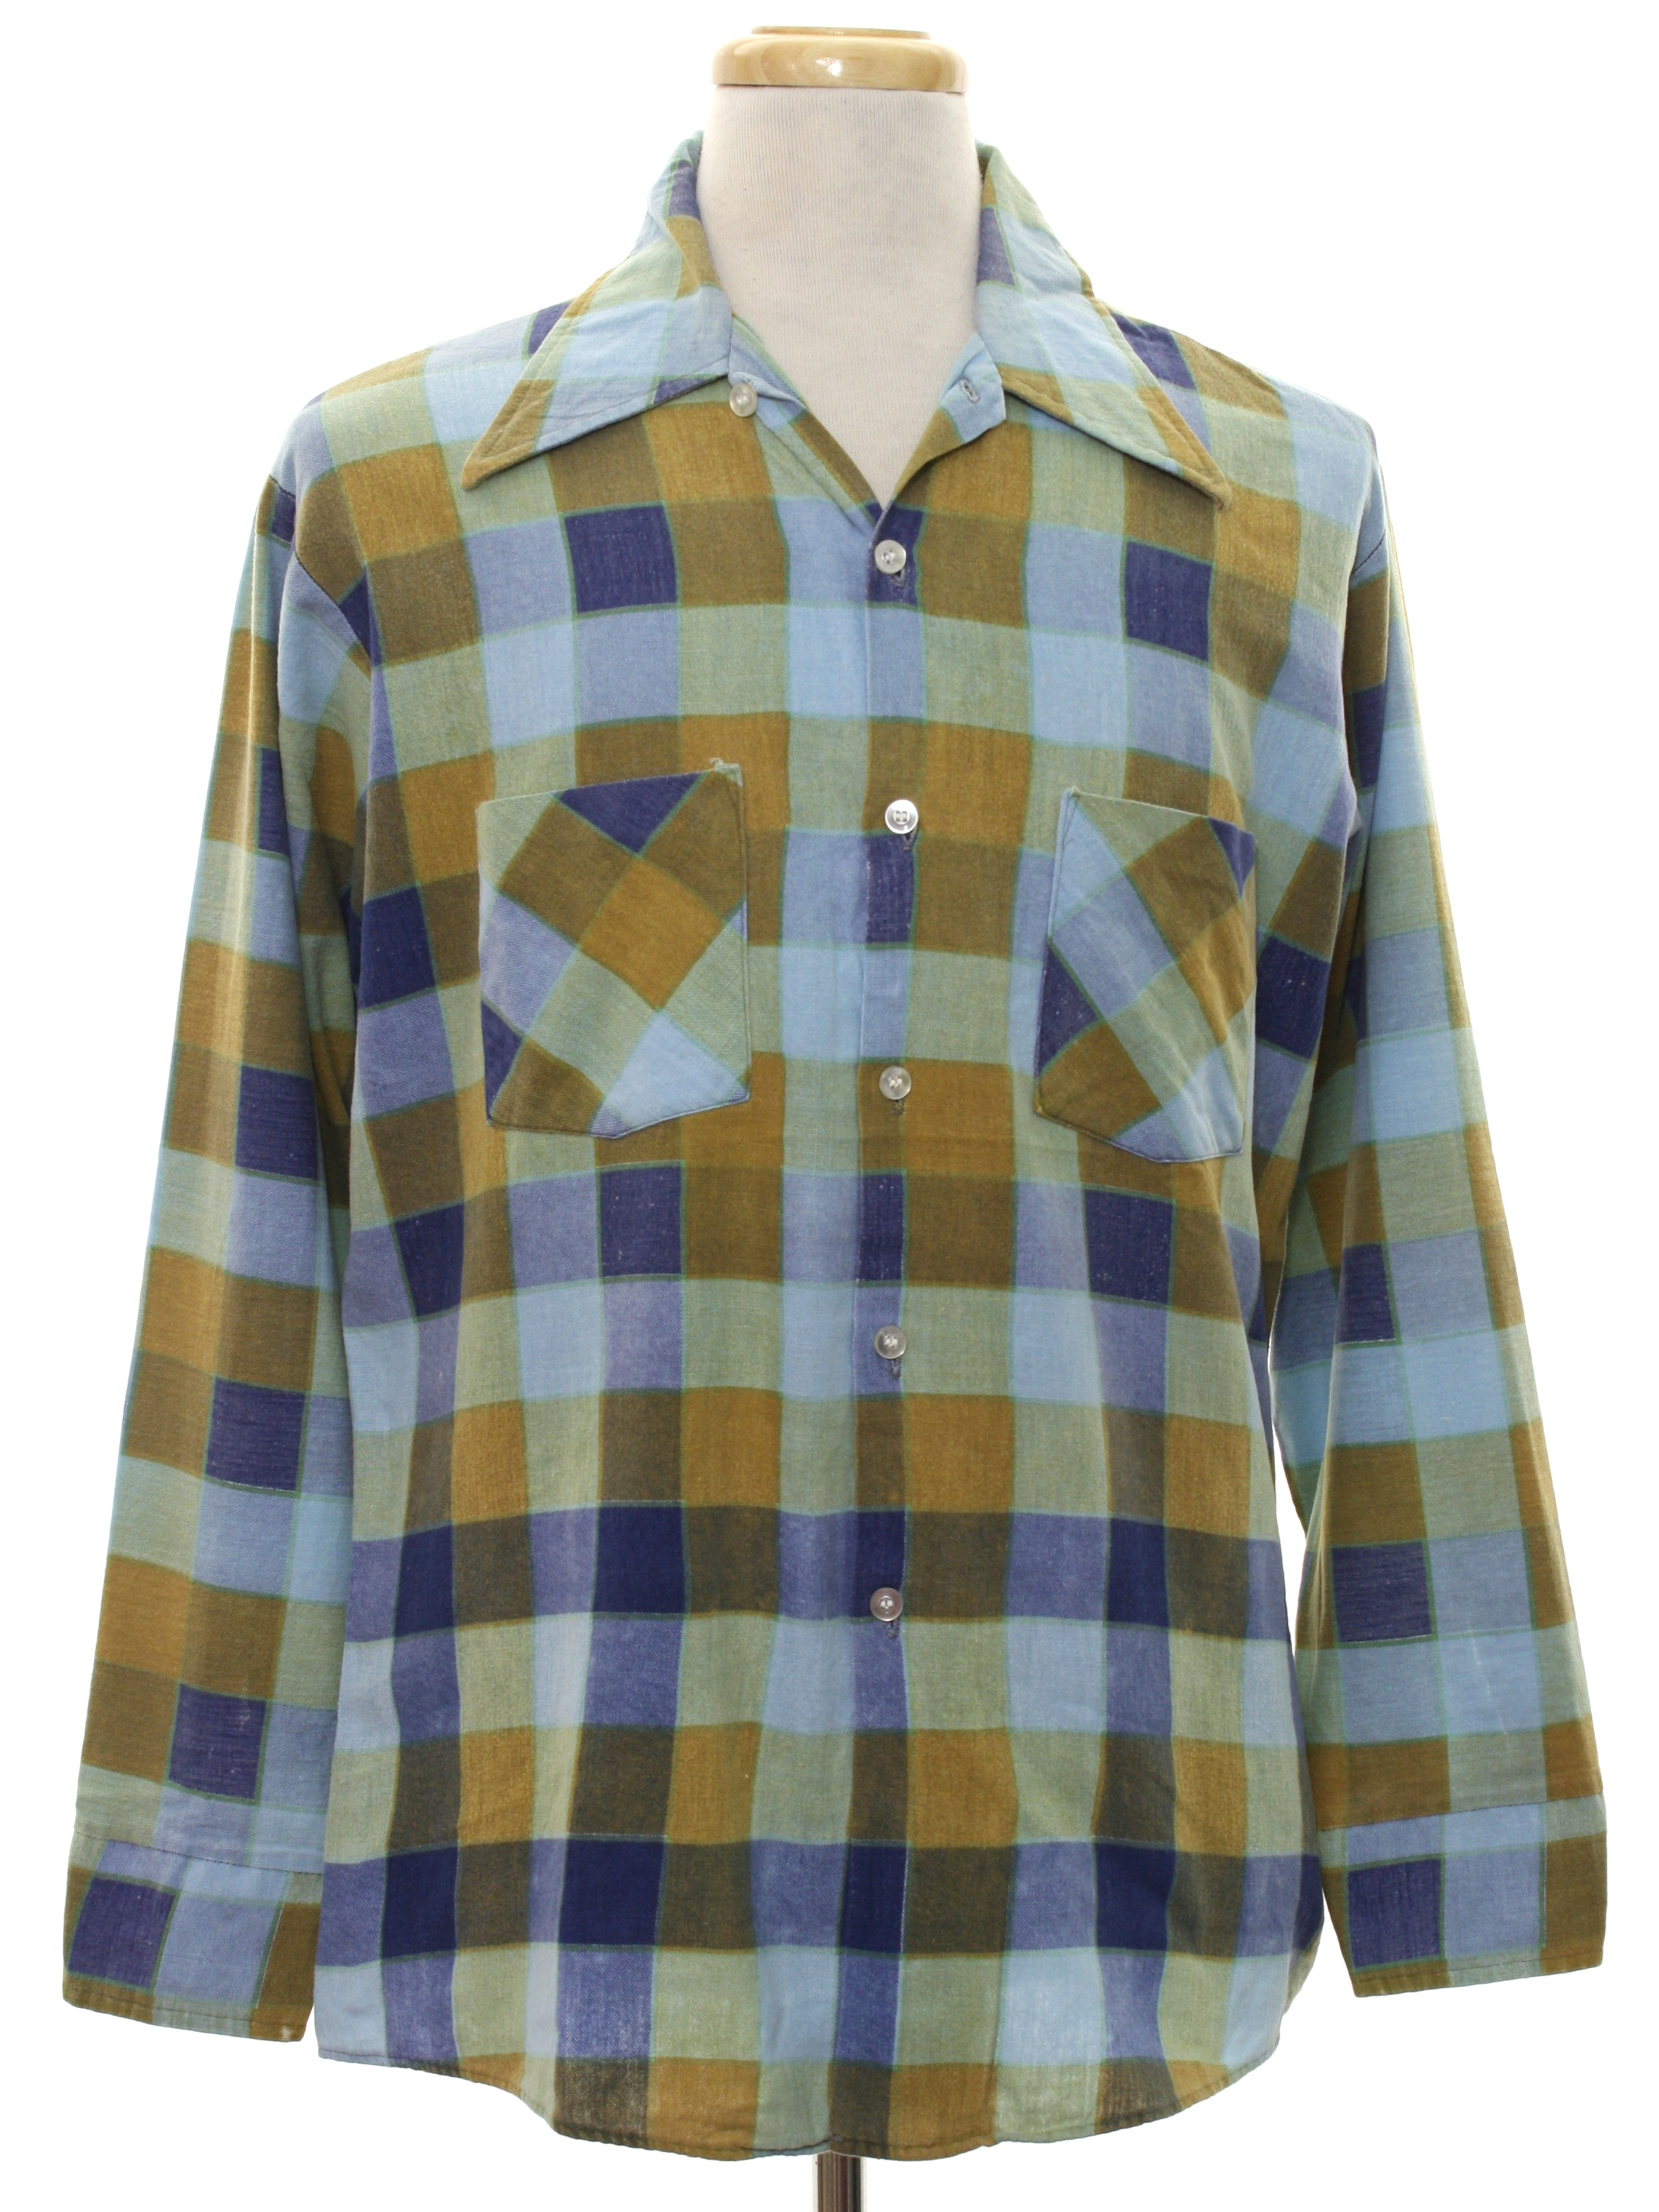 1960s vintage shirt 60s mohawk mens light blue for Cotton polyester flannel shirts